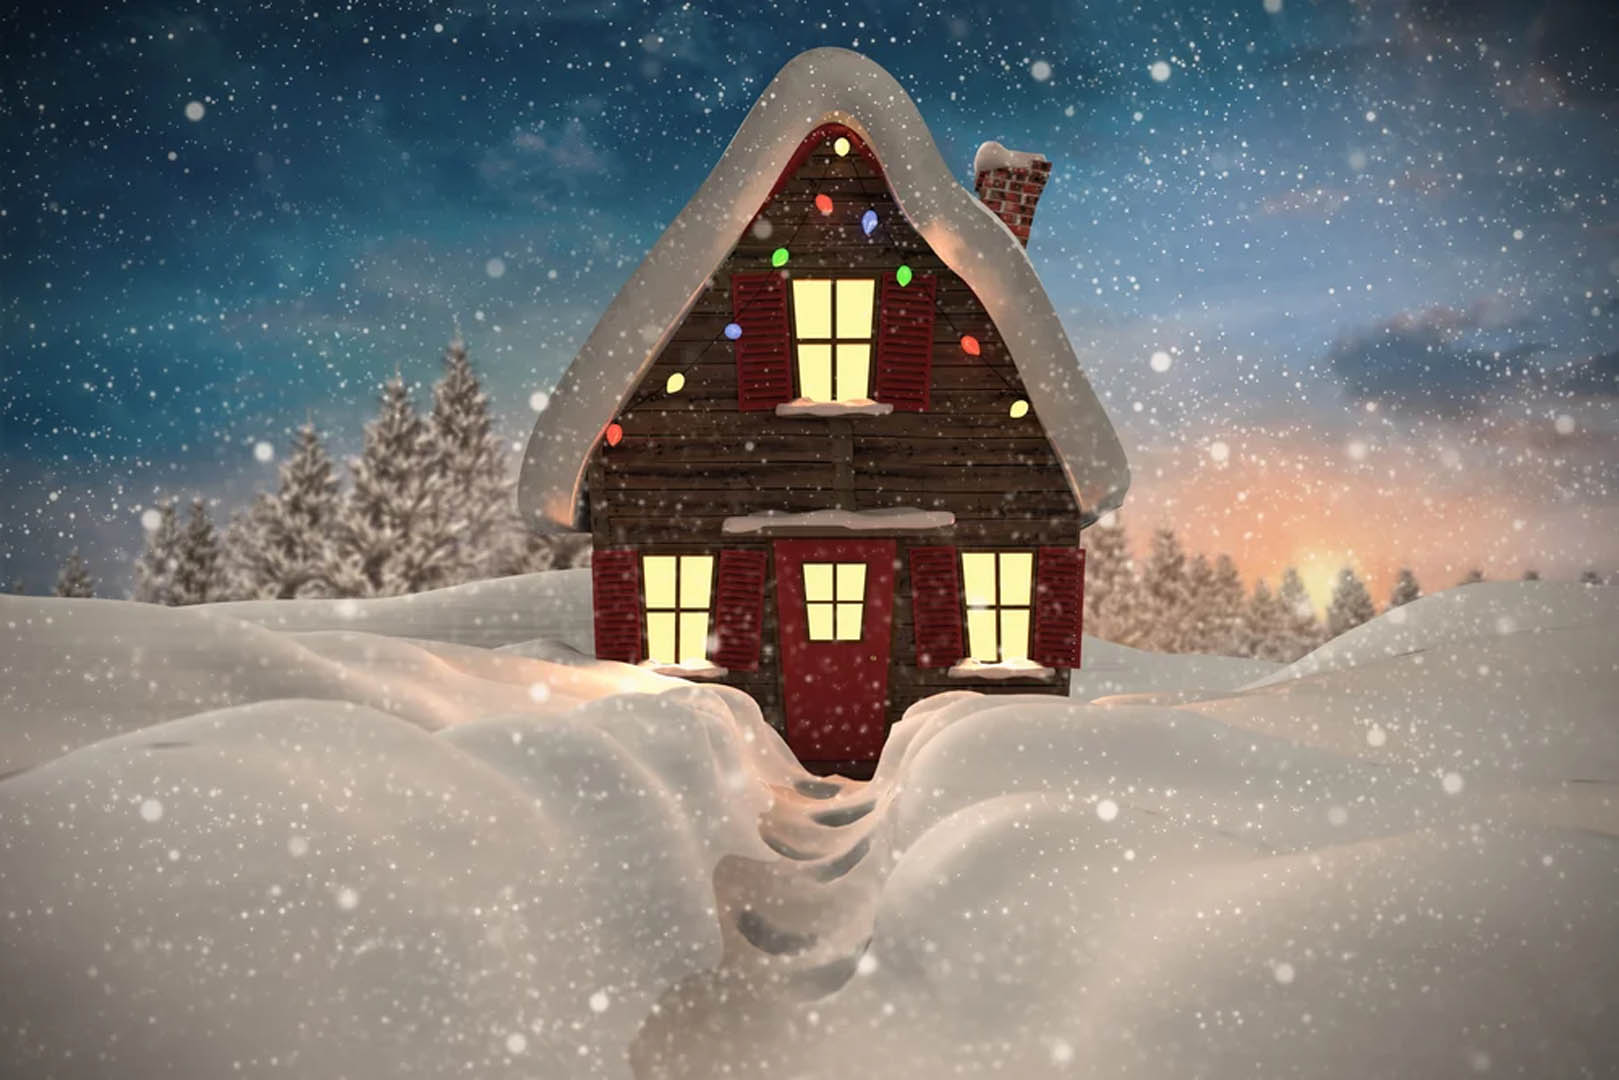 Composite-image-of-christmas-house-against-fir-tree-forest-in-snowy-landscape-1